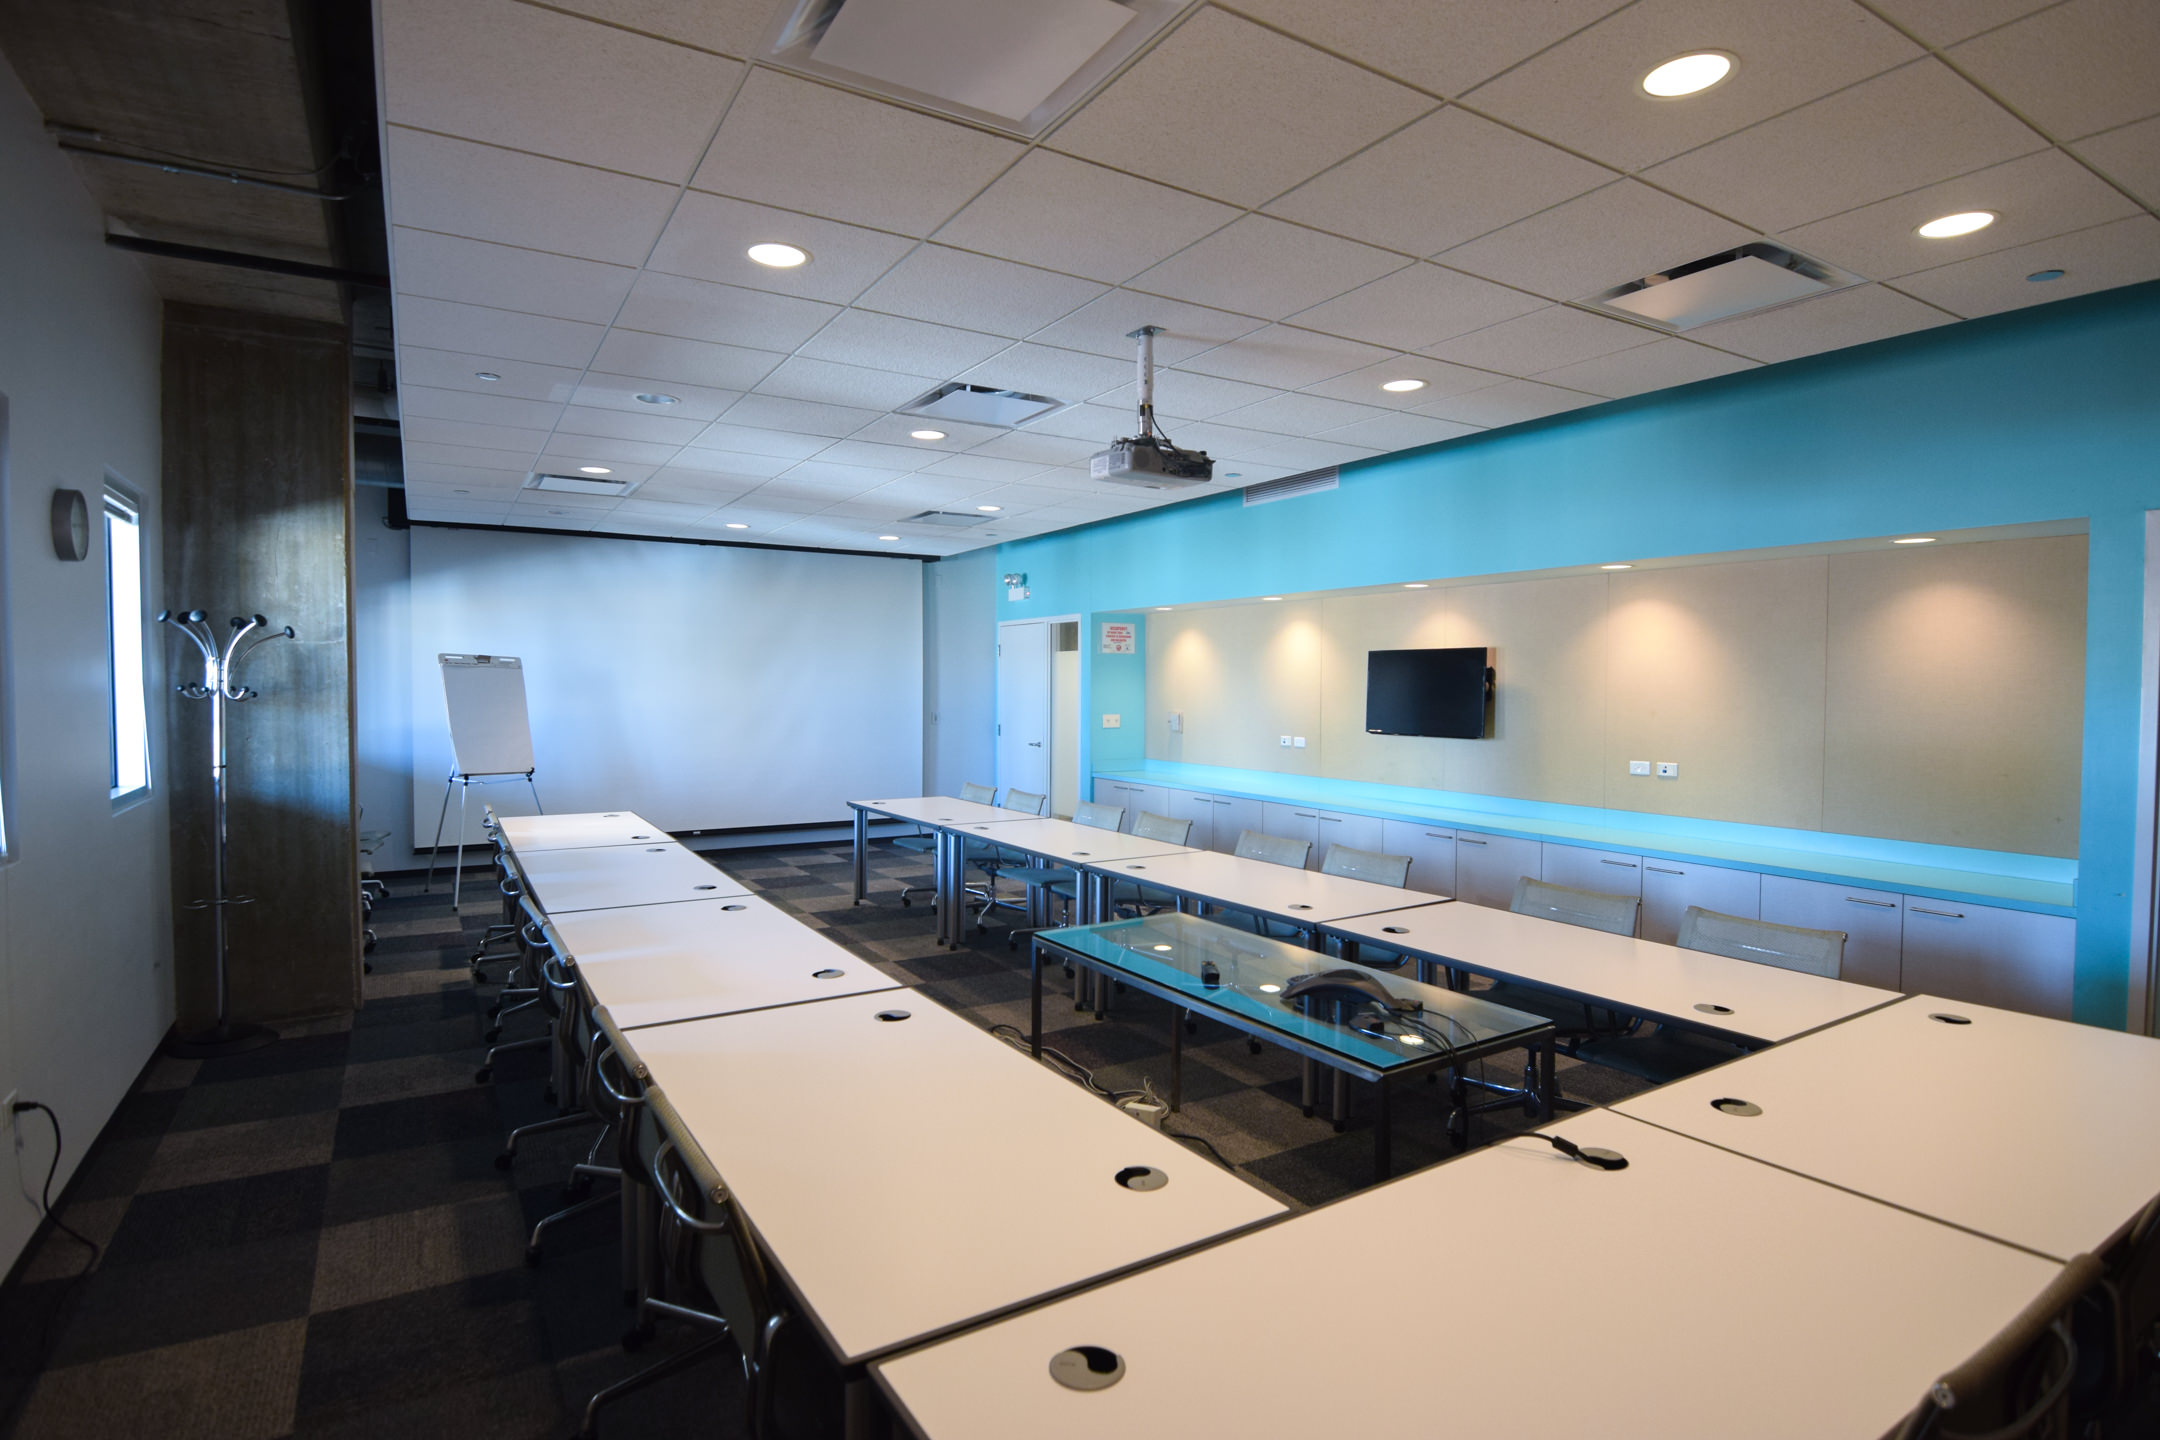 Center On Halsted Chicagos Lesbian Gay Bisexual And Transgender - Conference table hdmi port